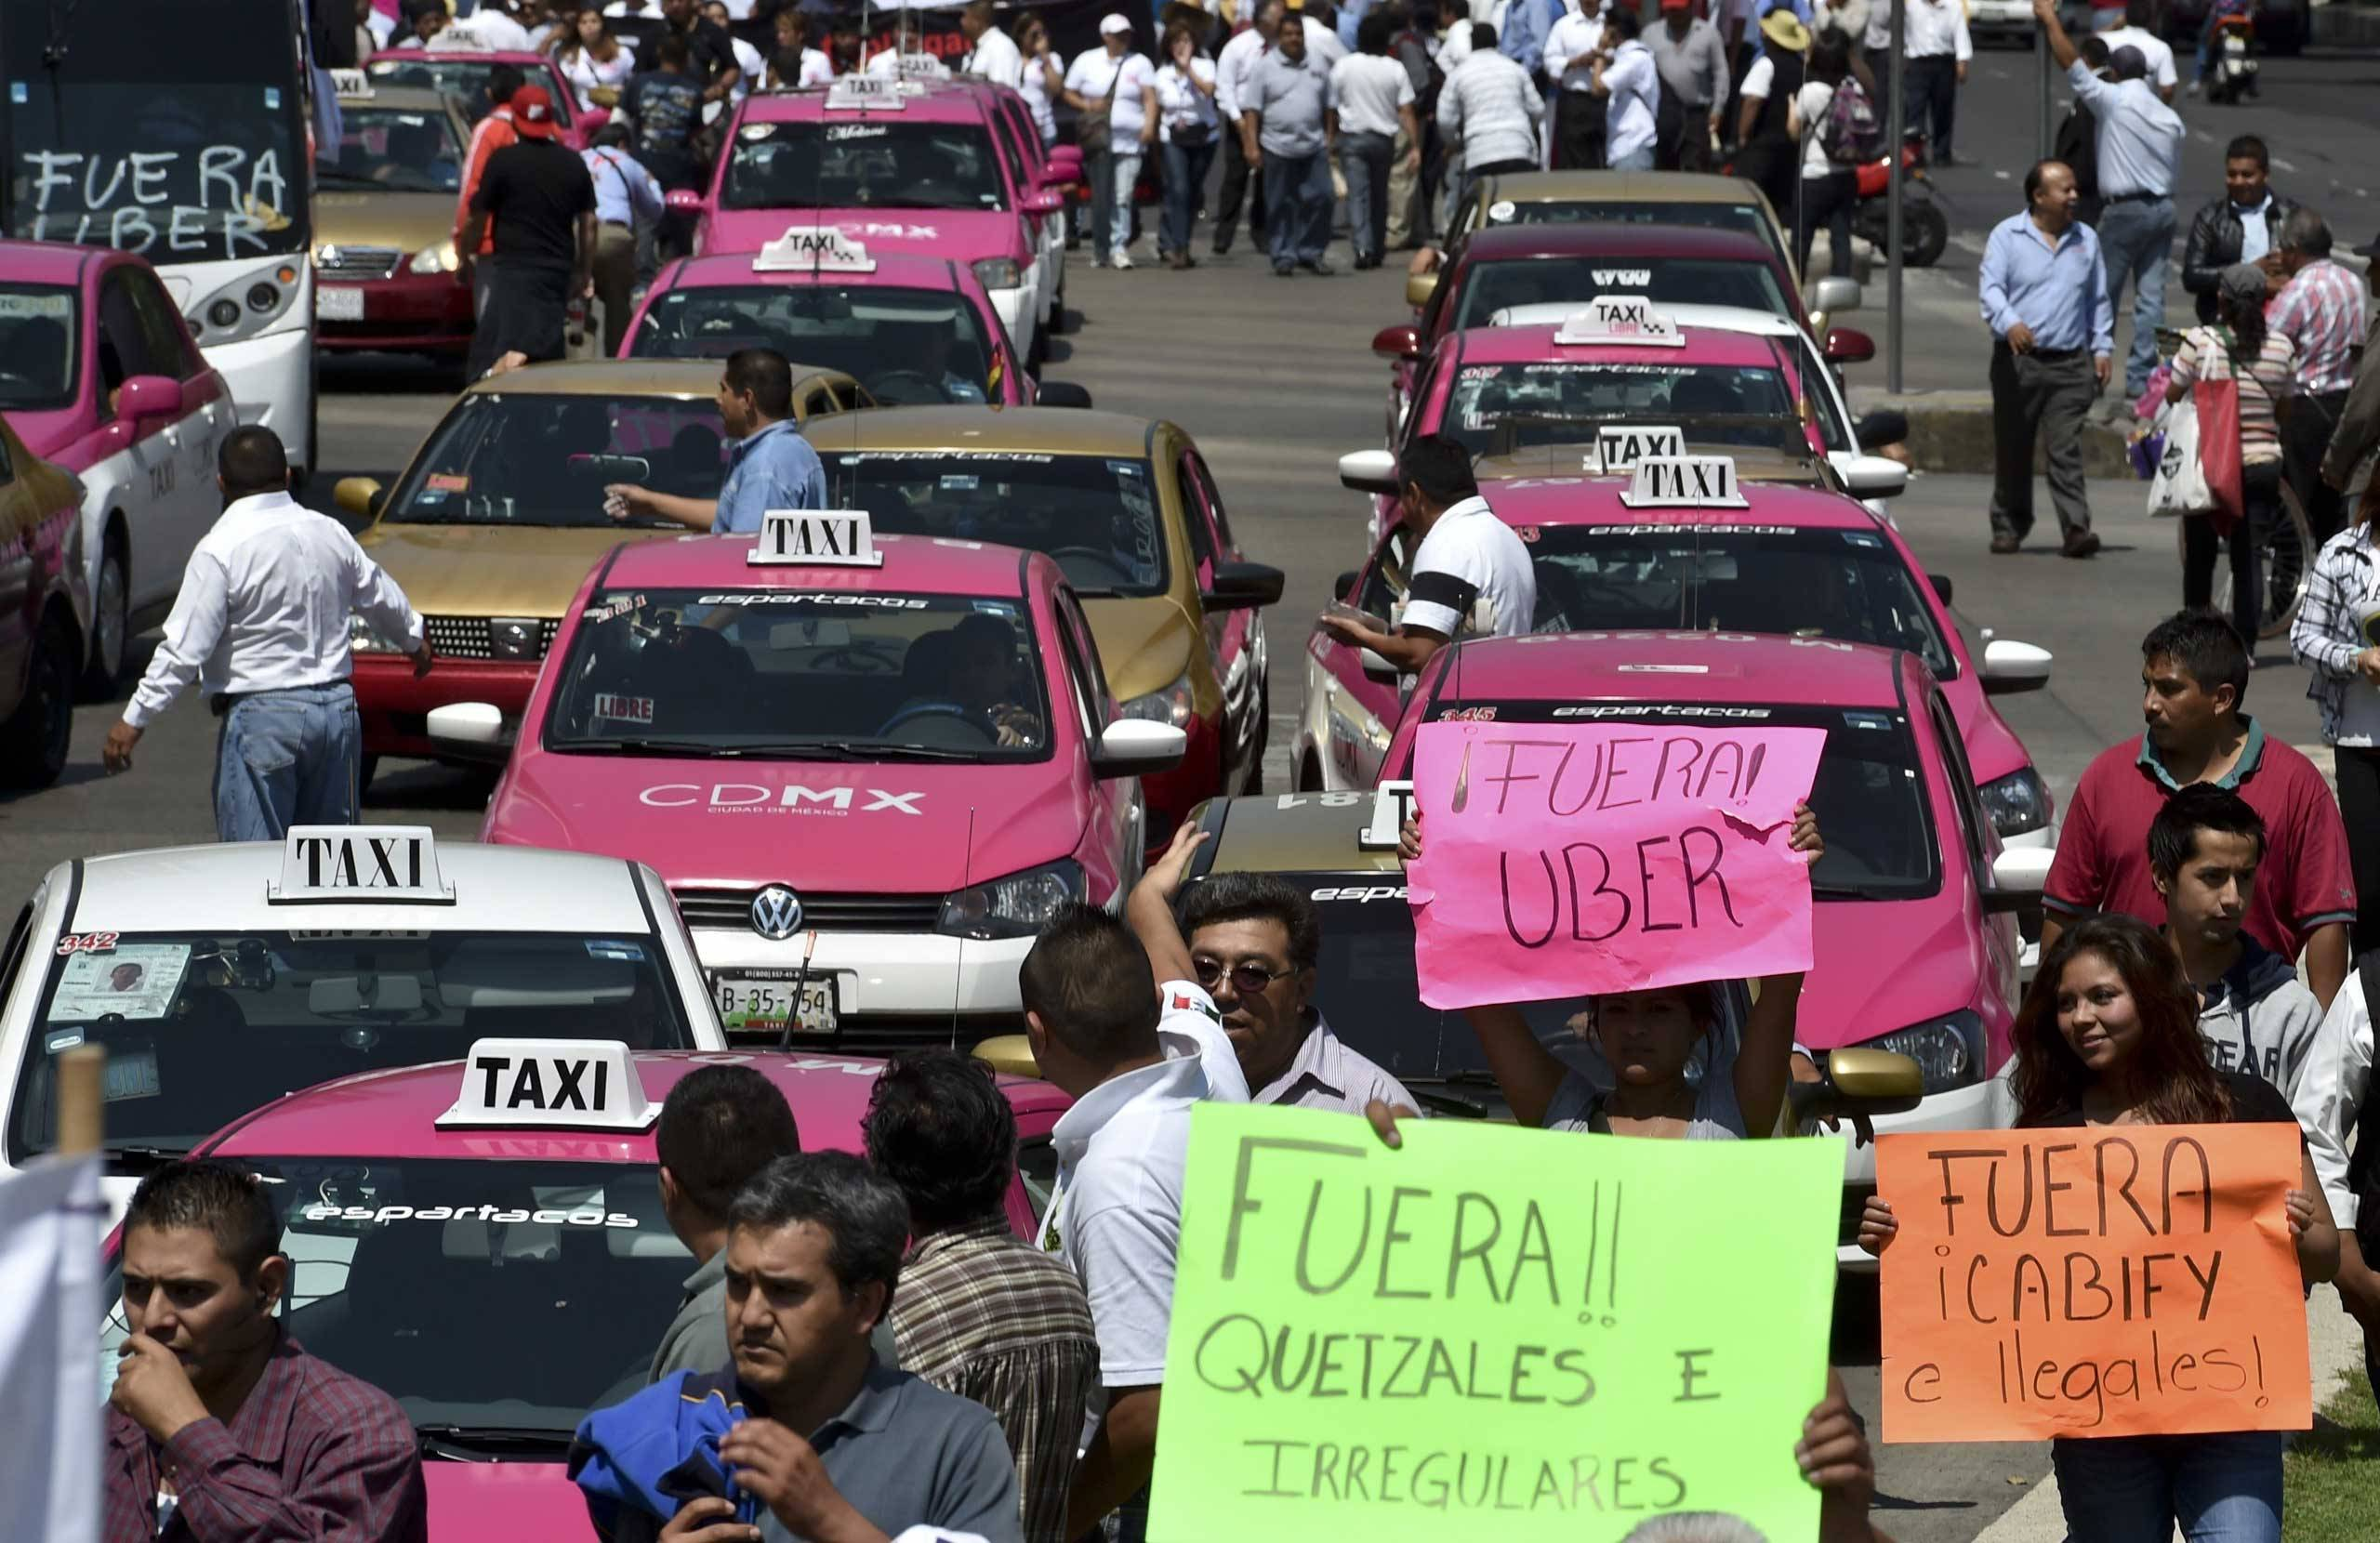 Taxi drivers take part in a protest against the private taxi company Uber for alleged unfair competition, in Mexico City on May 25, 2015. Thousands of taxi drivers protested across the Mexican capital to demand the government to take action against Uber, while the company retaliates by offering free transport in the city.   AFP PHOTO / Yuri CORTEZYURI CORTEZ/AFP/Getty Images